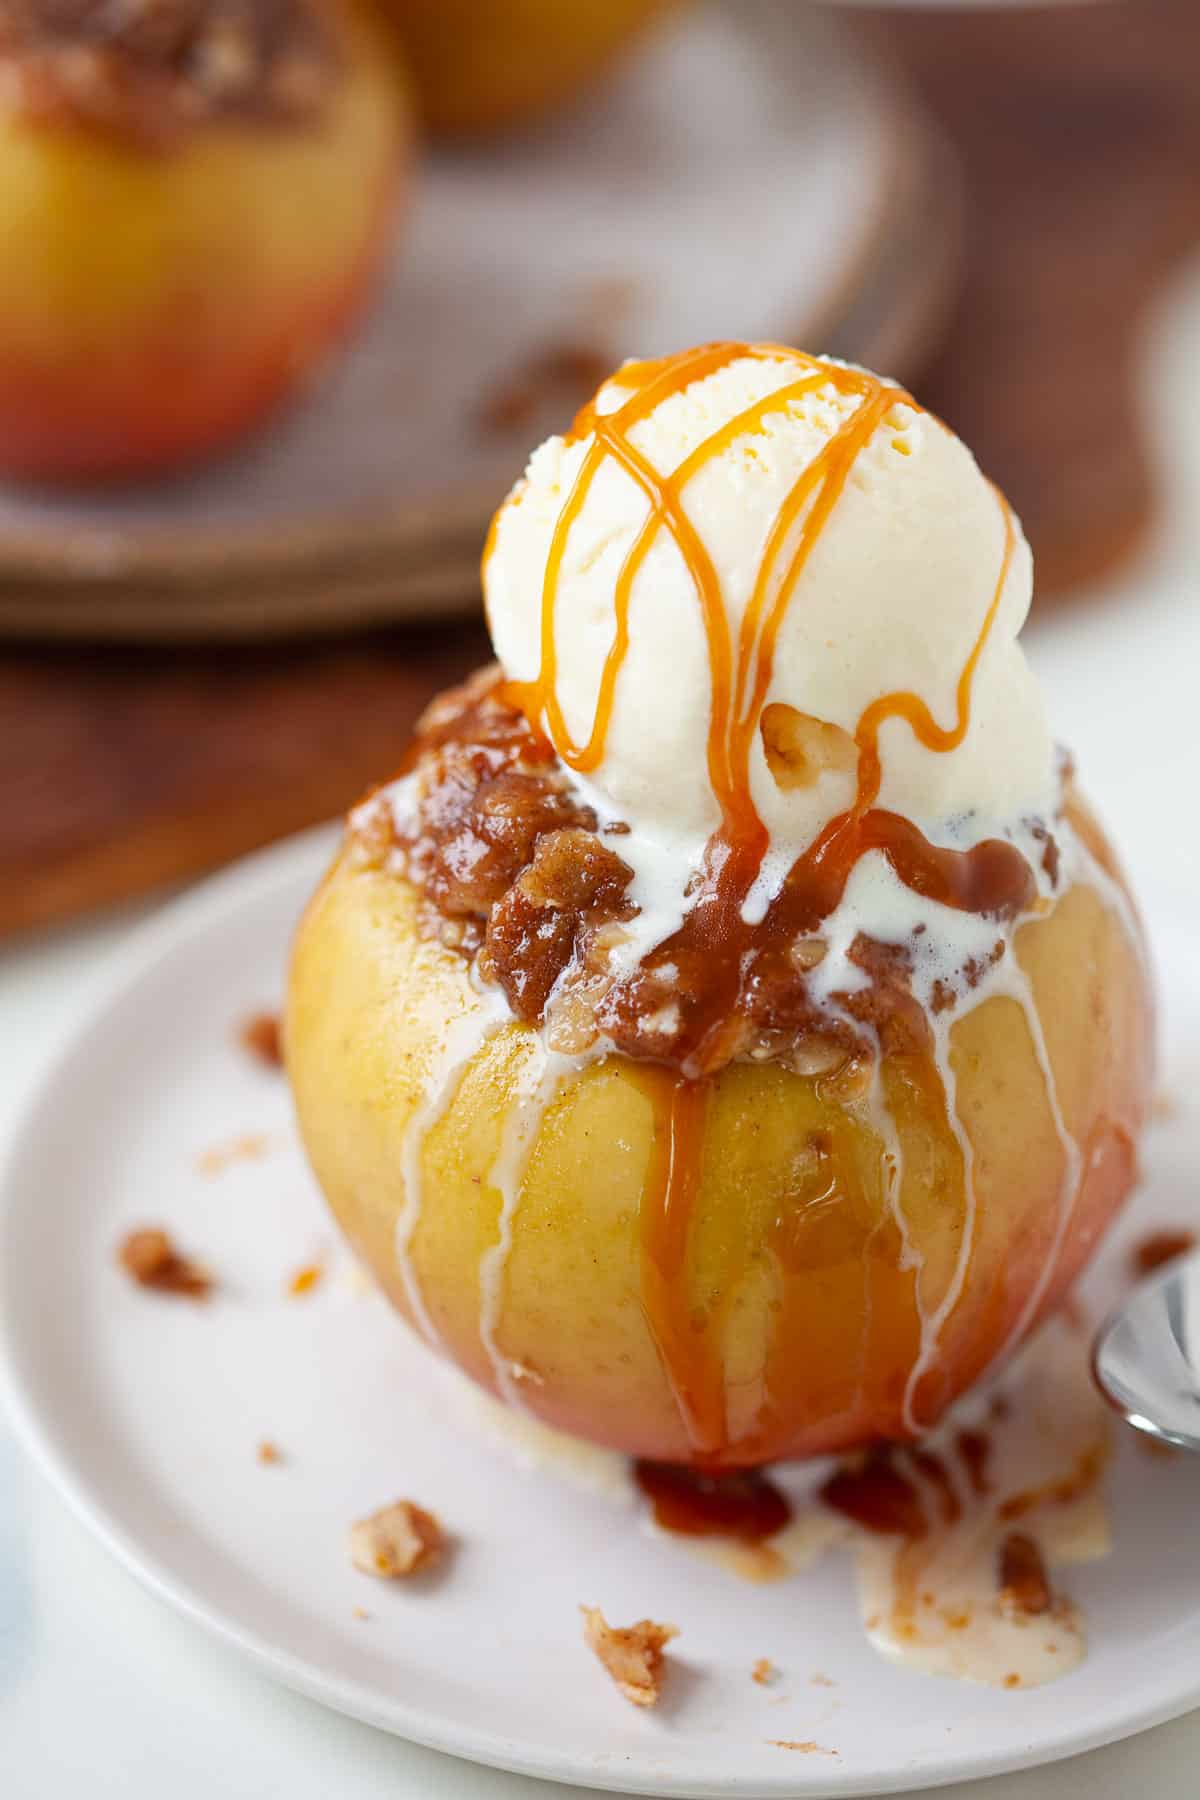 baked apple with oat and cinnamon mixture with scoop of vanilla ice cream and caramel drizzle